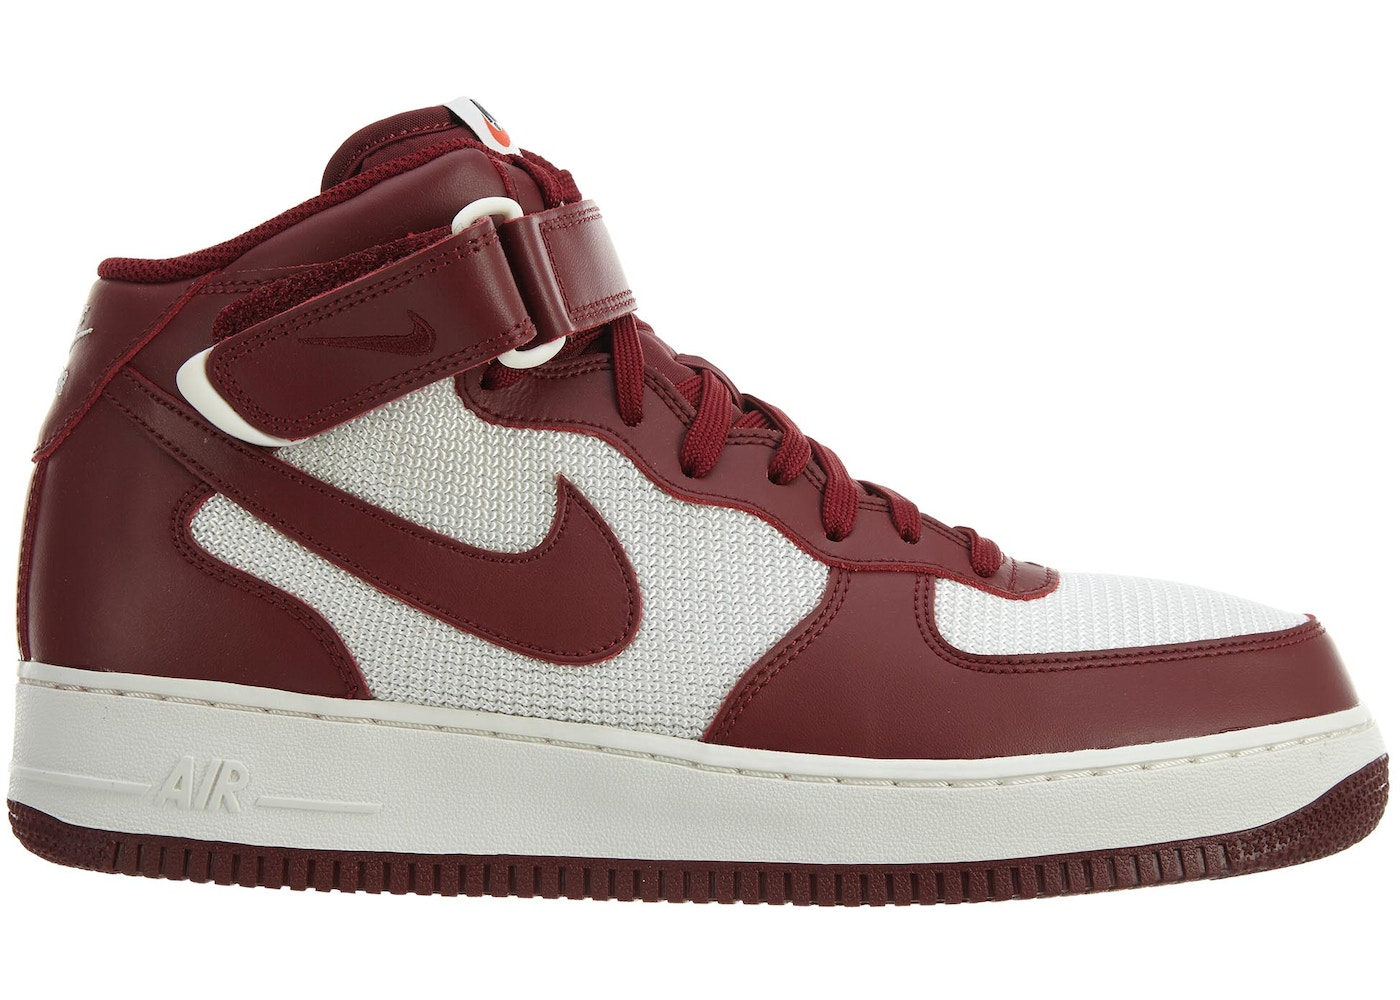 590d92de28d Sell. or Ask. Size: 12. View All Bids. Nike Air Force 1 Mid 07 ...